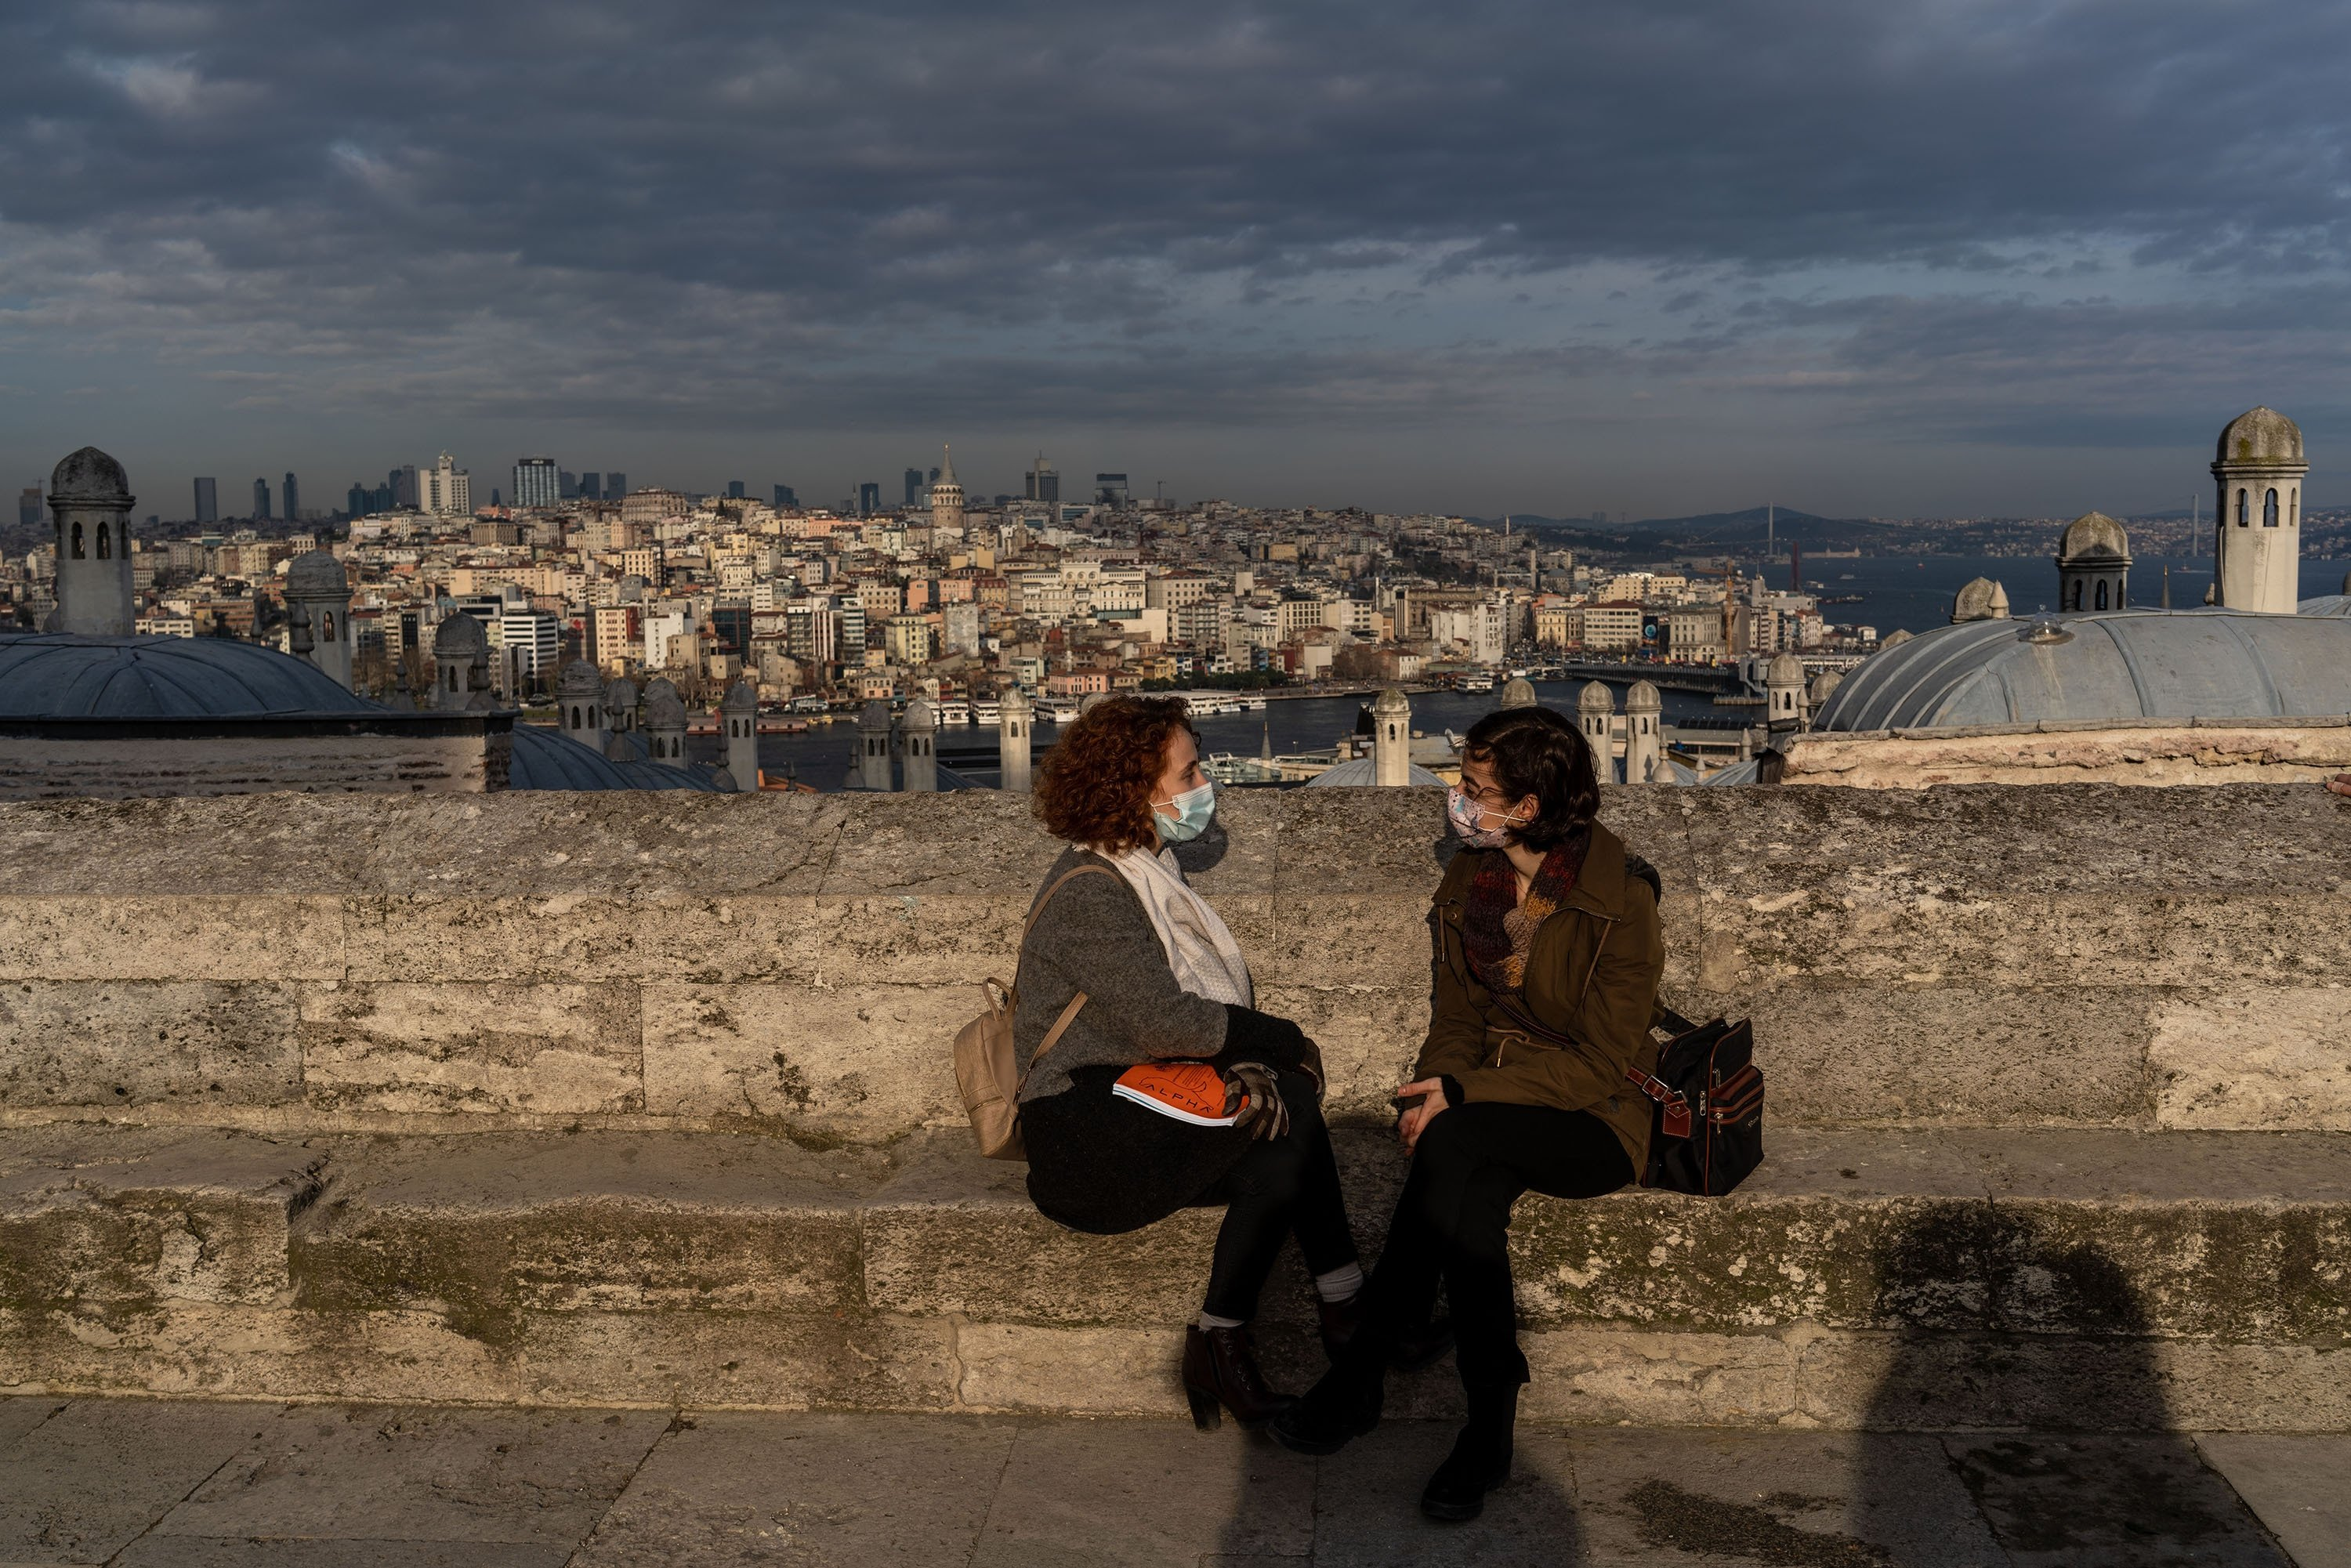 People enjoy the view of the historical peninsula from the garden of the famous Suleymaniye Mosque, in the Süleymaniye district, Istanbul, Turkey on Jan. 22, 2021. (Erhan Demirtas via Getty Images)